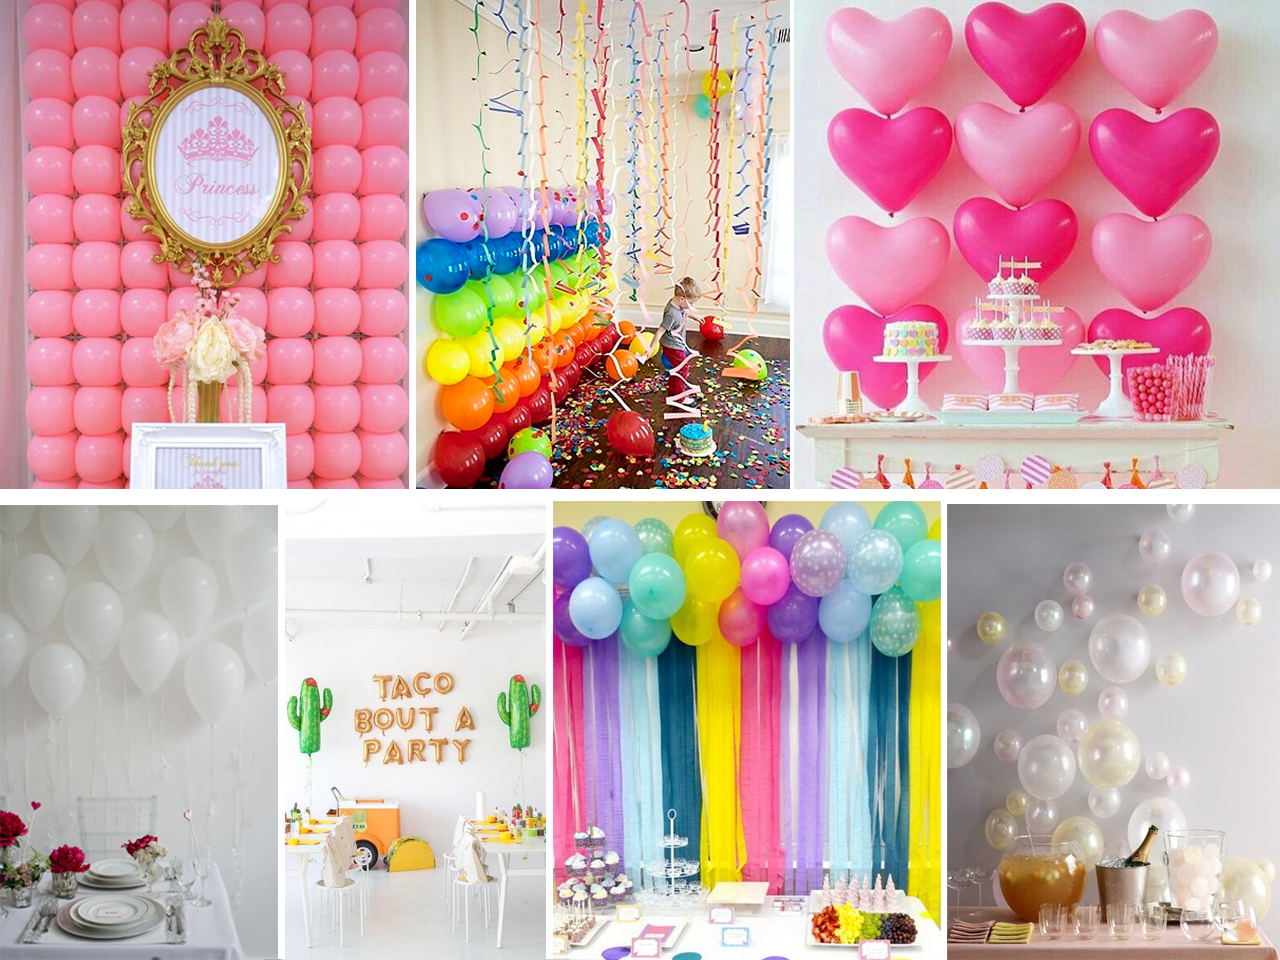 Como Decorar Una Pared Con Fotos Descubre Cómo Decorar Con Globos Con Estas Fantásticas Ideas